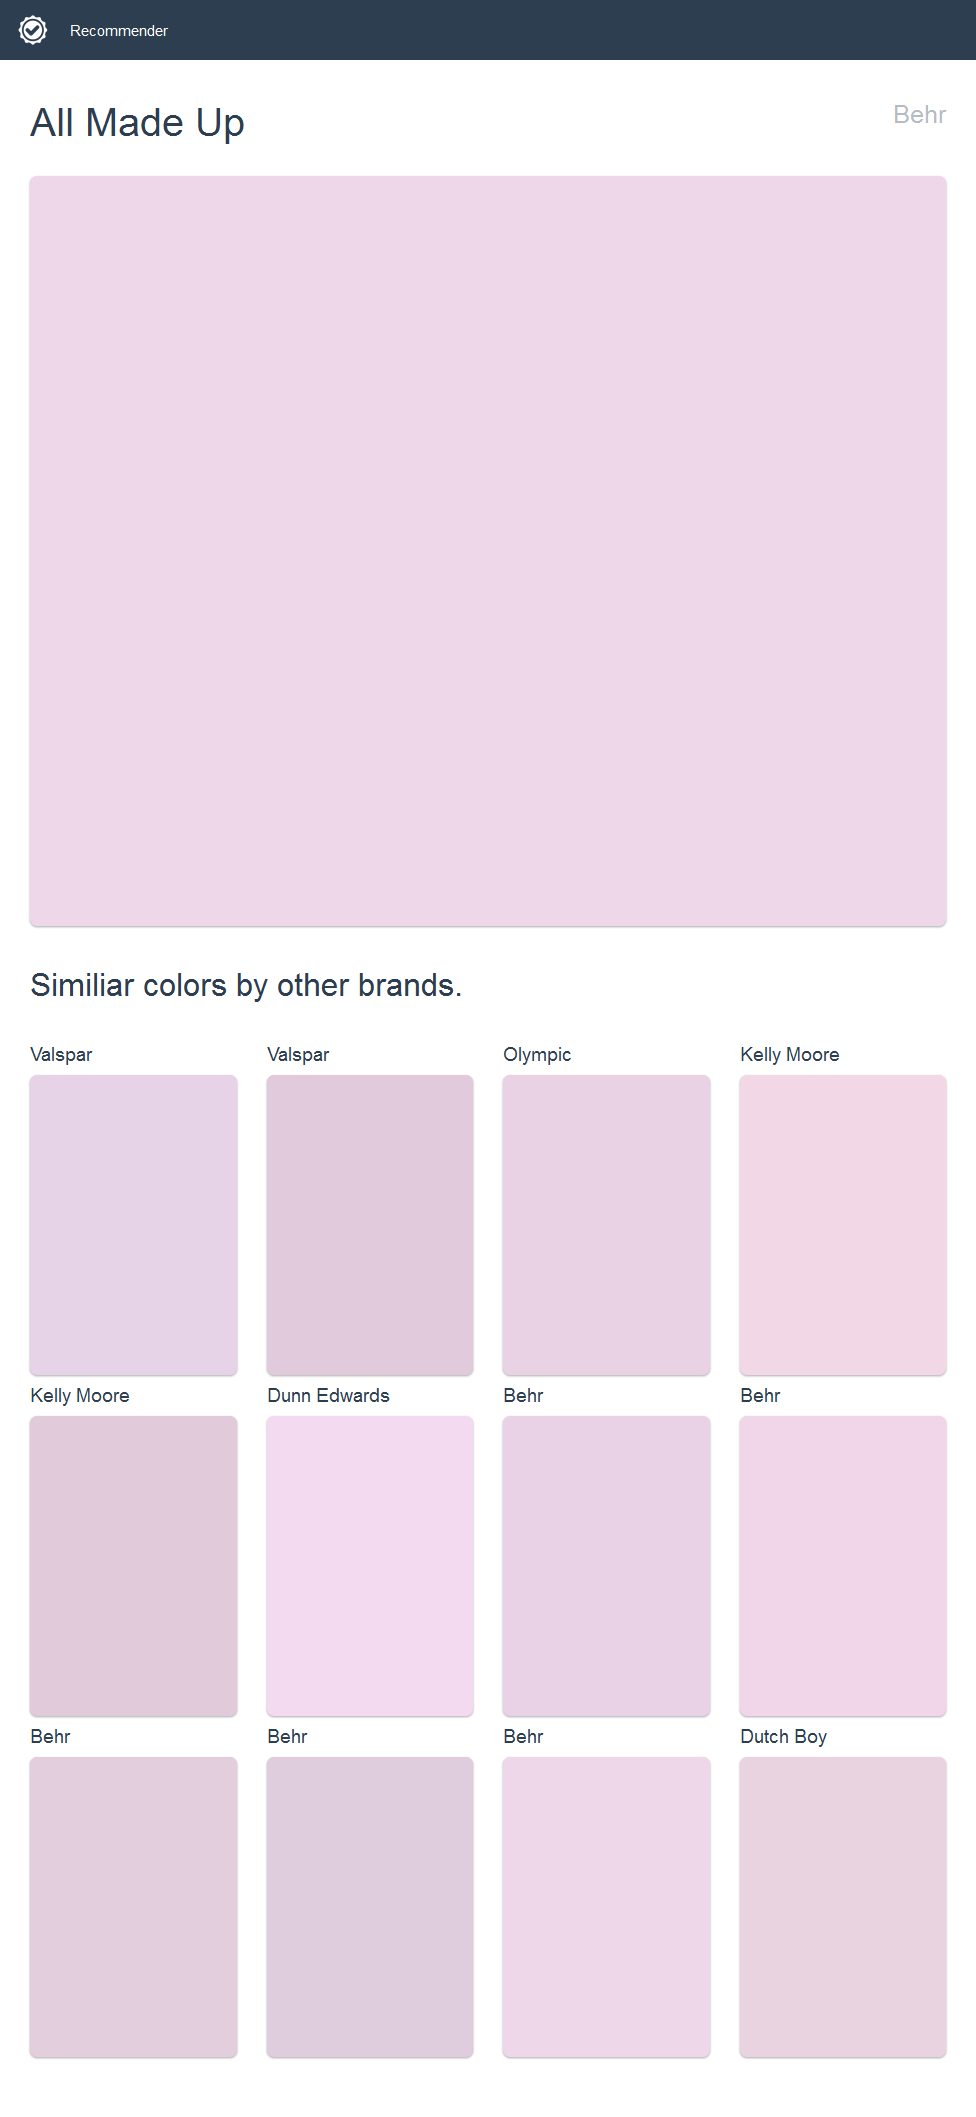 All Made Up, Behr. Click the image to see similiar colors by other ...